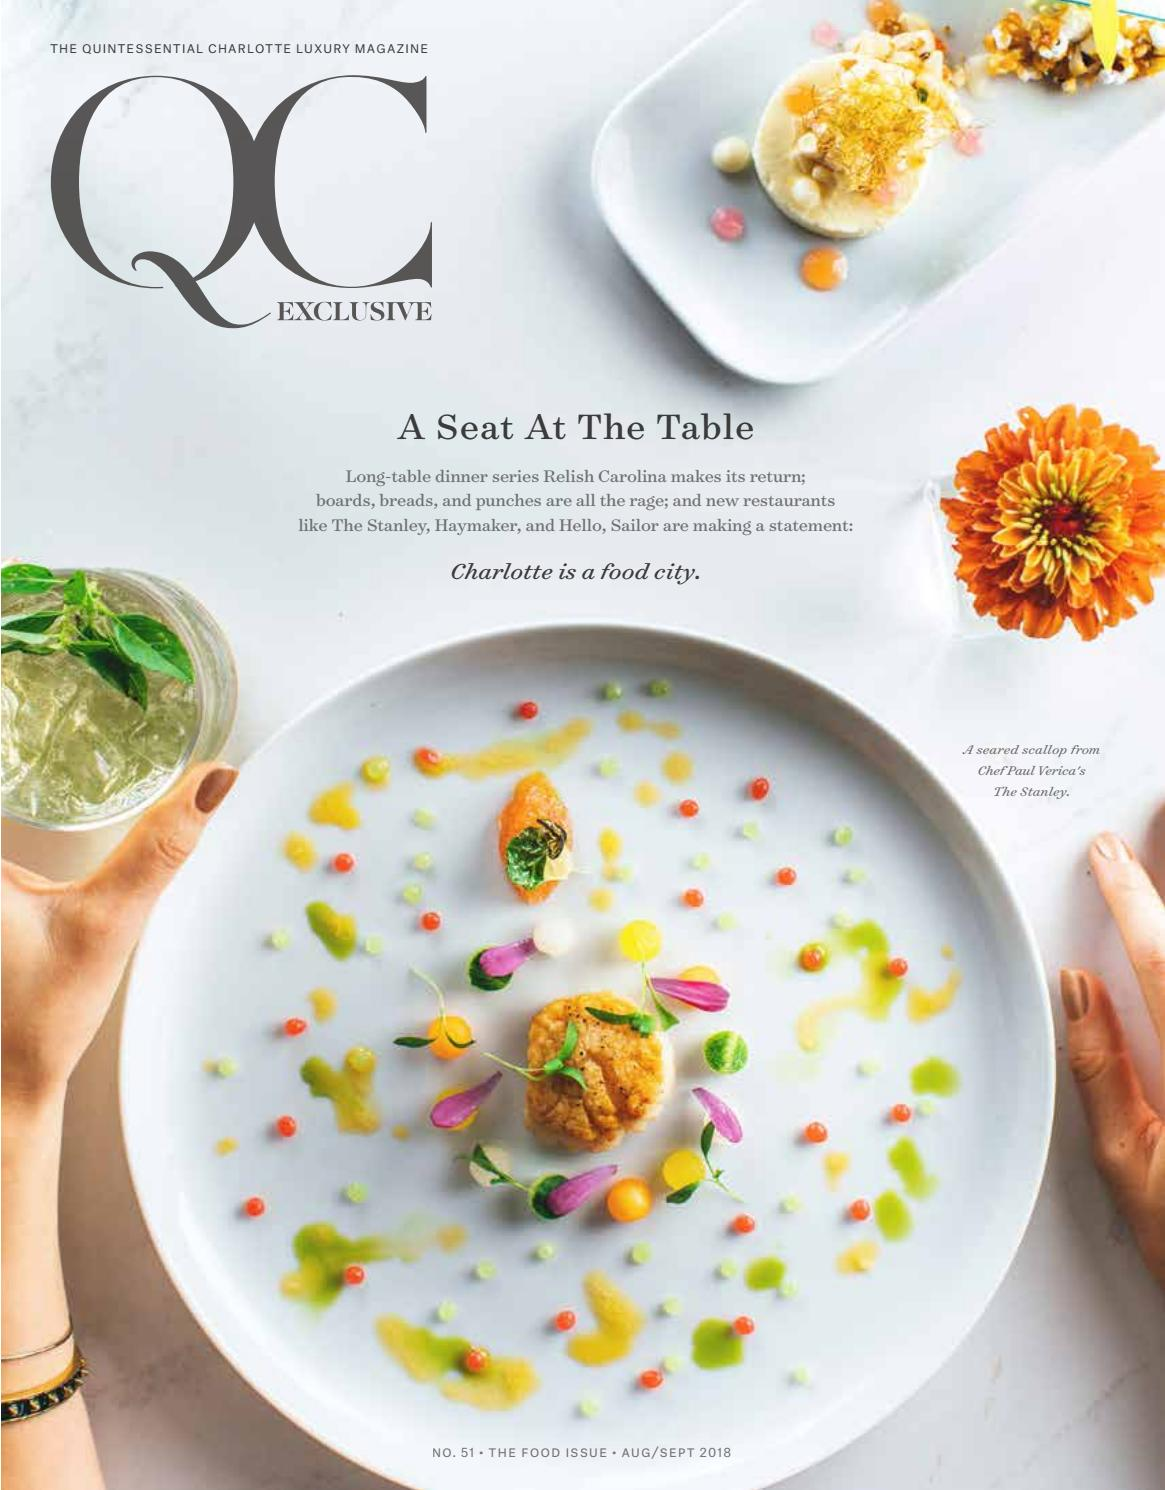 Qc Exclusive No 51 2018 Issue 6 Food Issue By Qc Exclusive Magazine Issuu